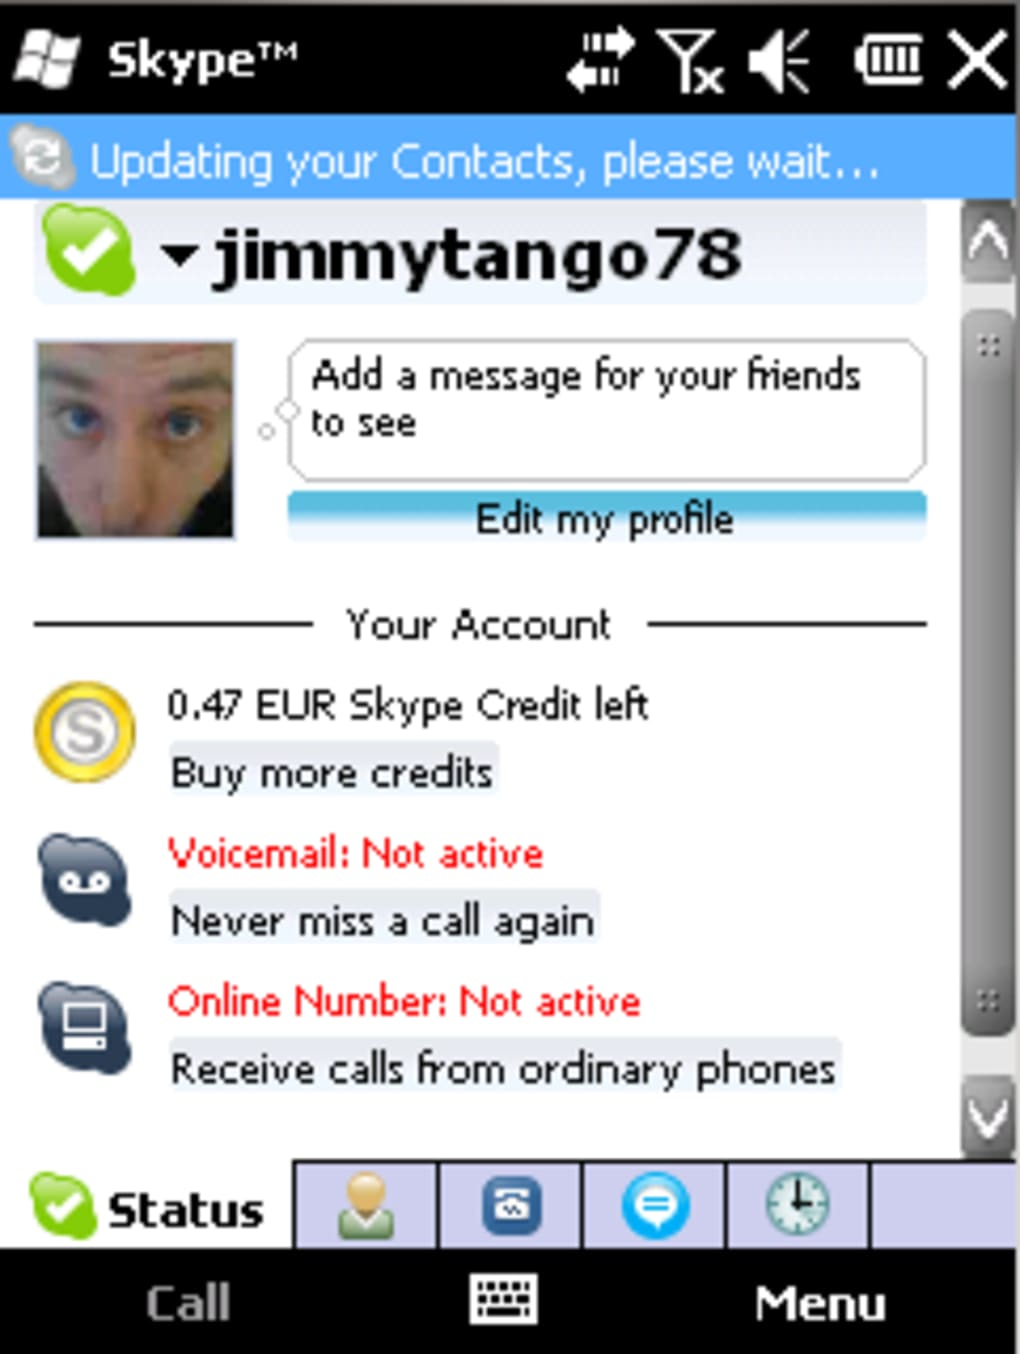 skype windows mobile 3.0.0.256 beta